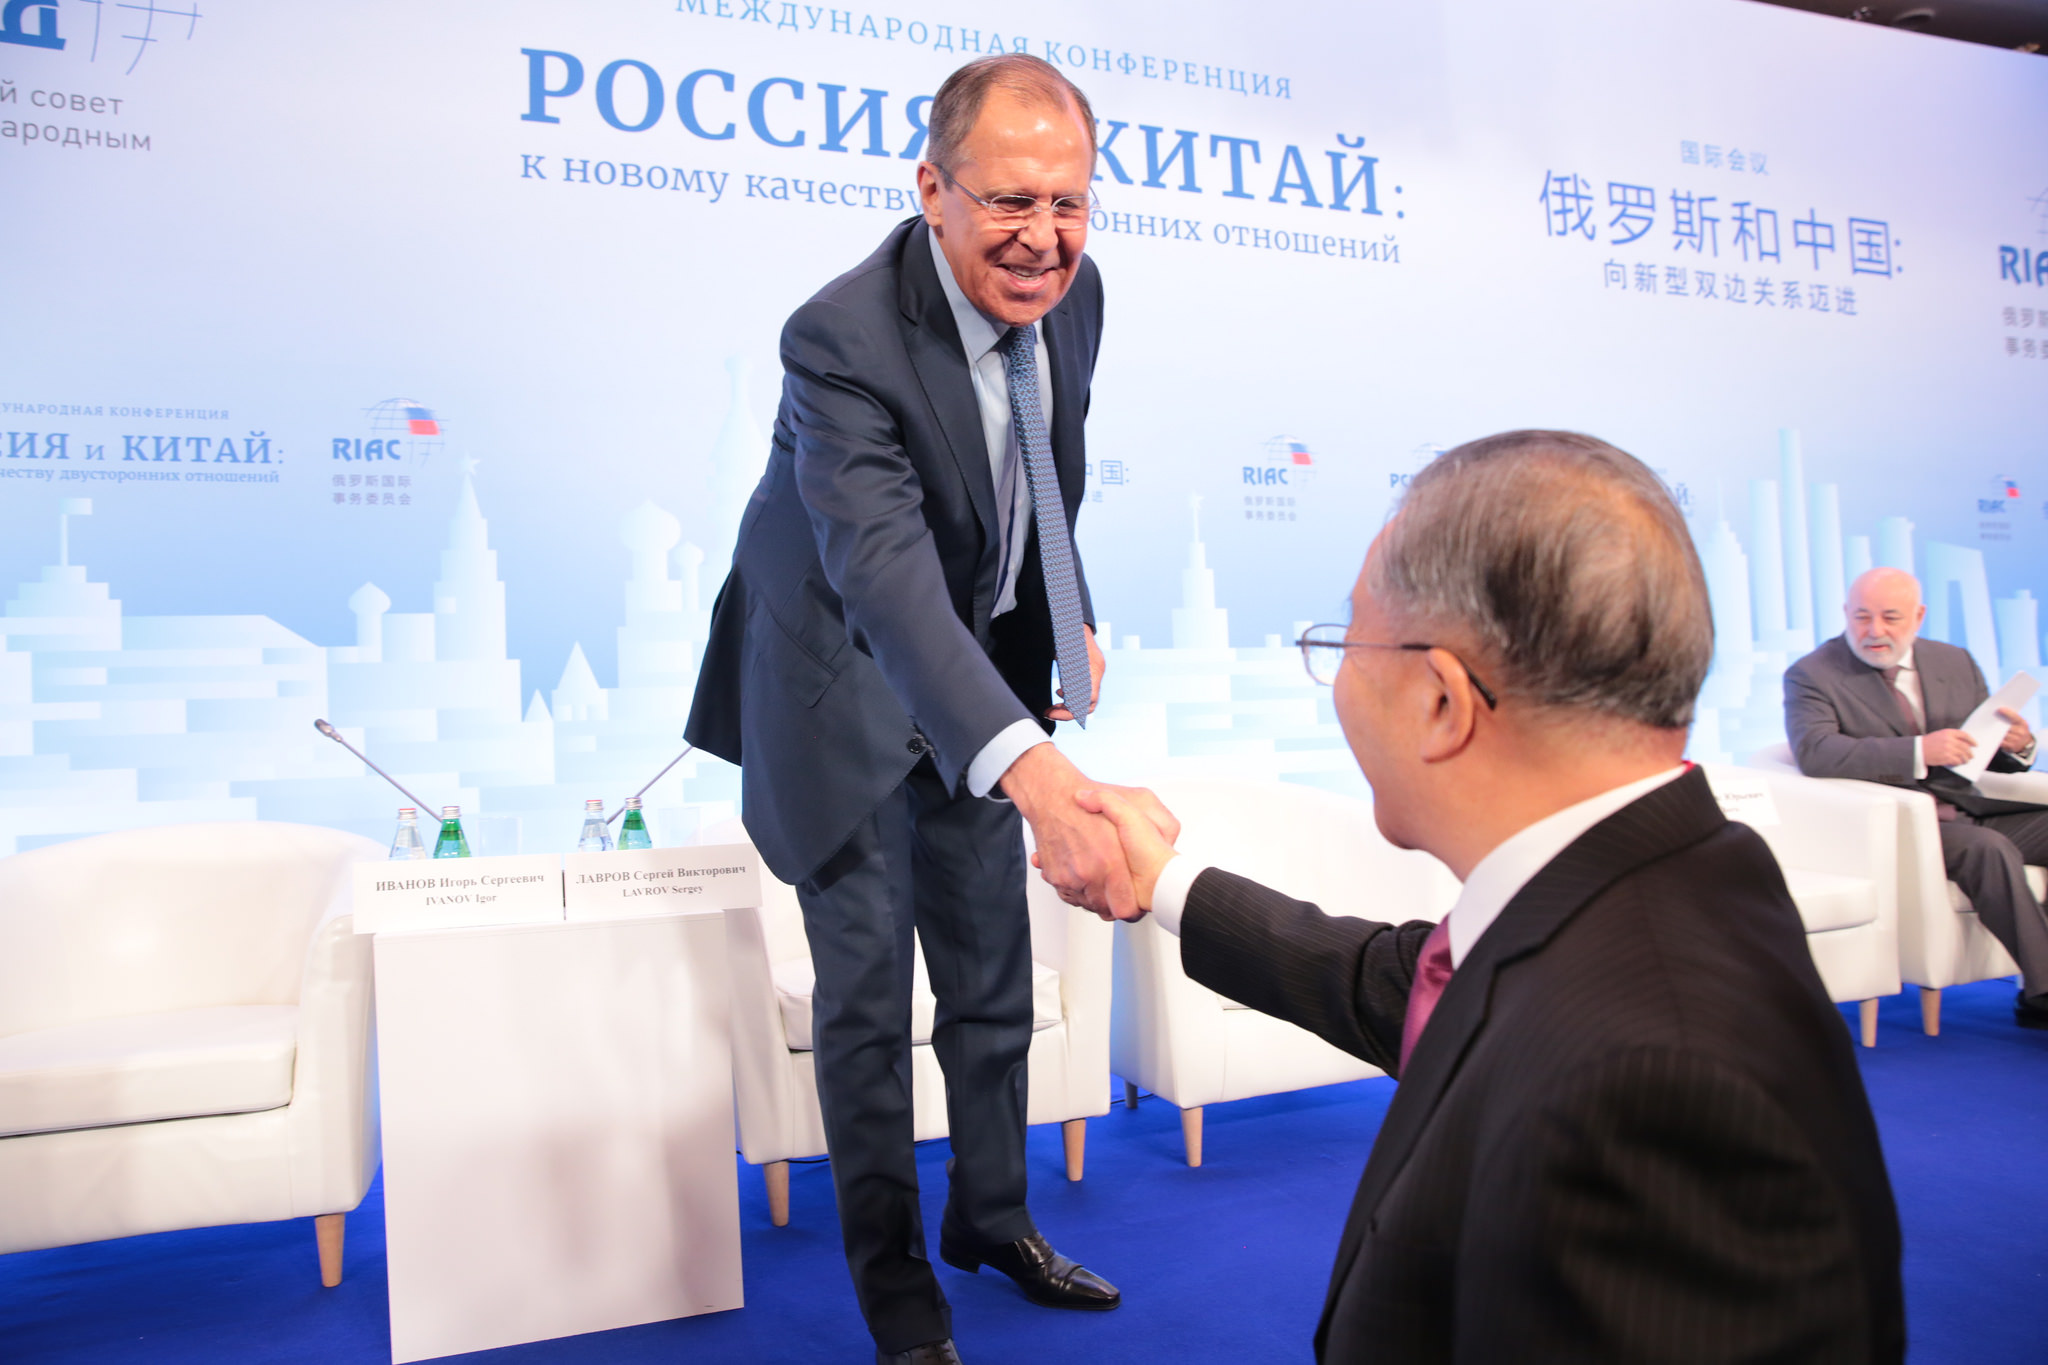 Russian Foreign Minister Sergei Lavrov (L) shakes hands with Chinese diplomat Dai Bingguo (R).